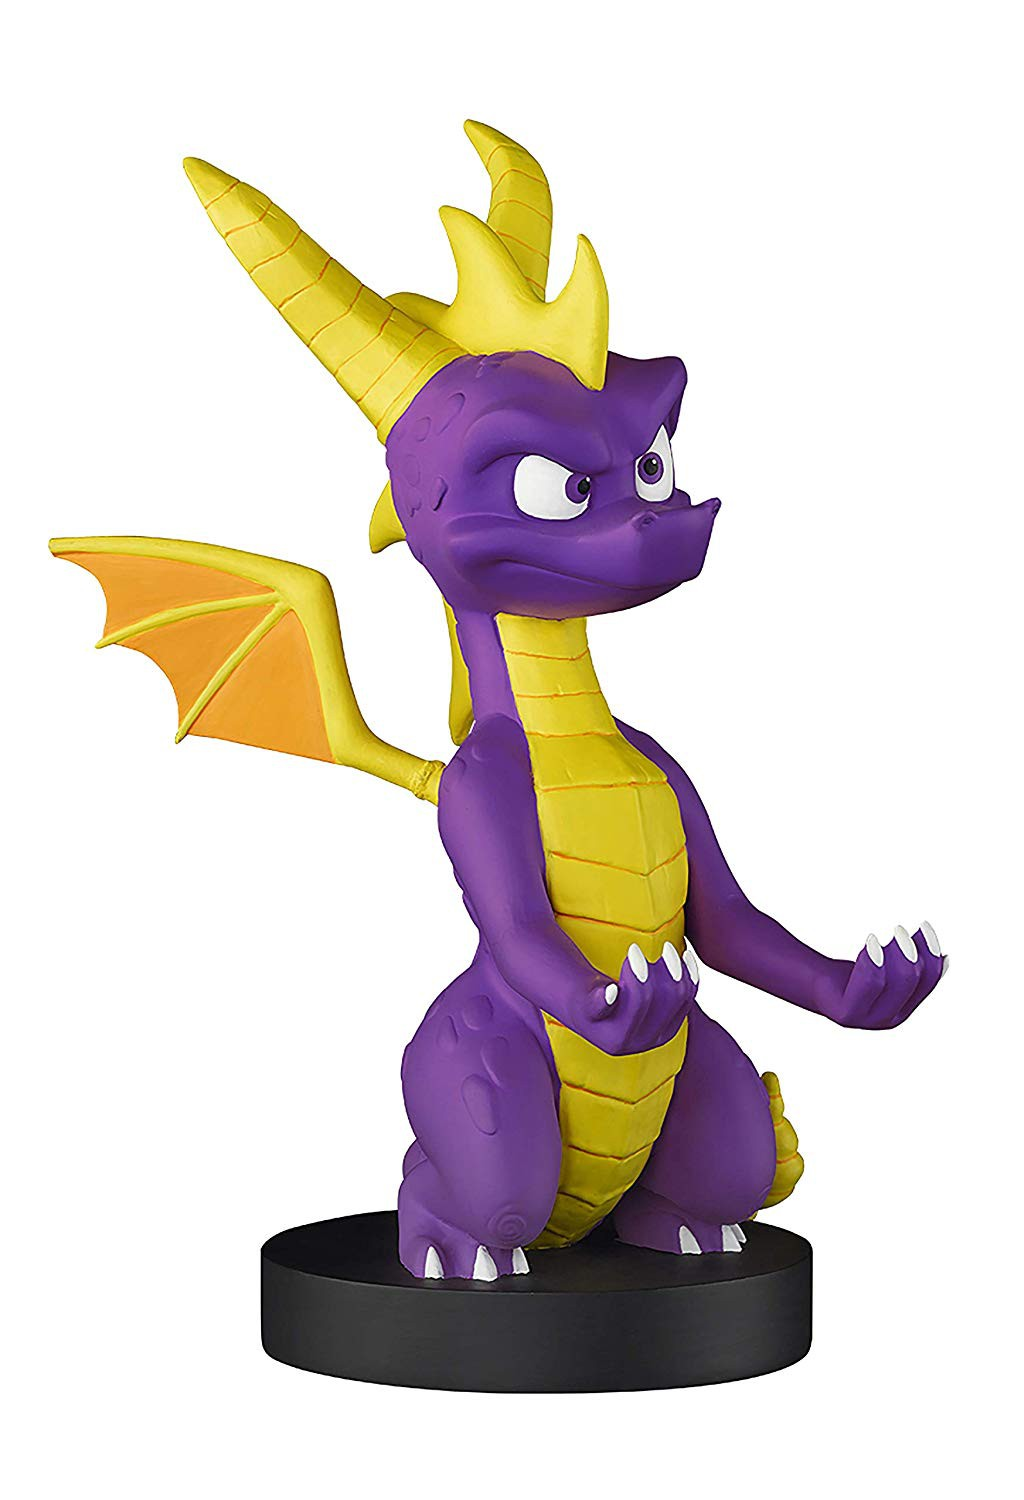 Spyro Cable Guy stand